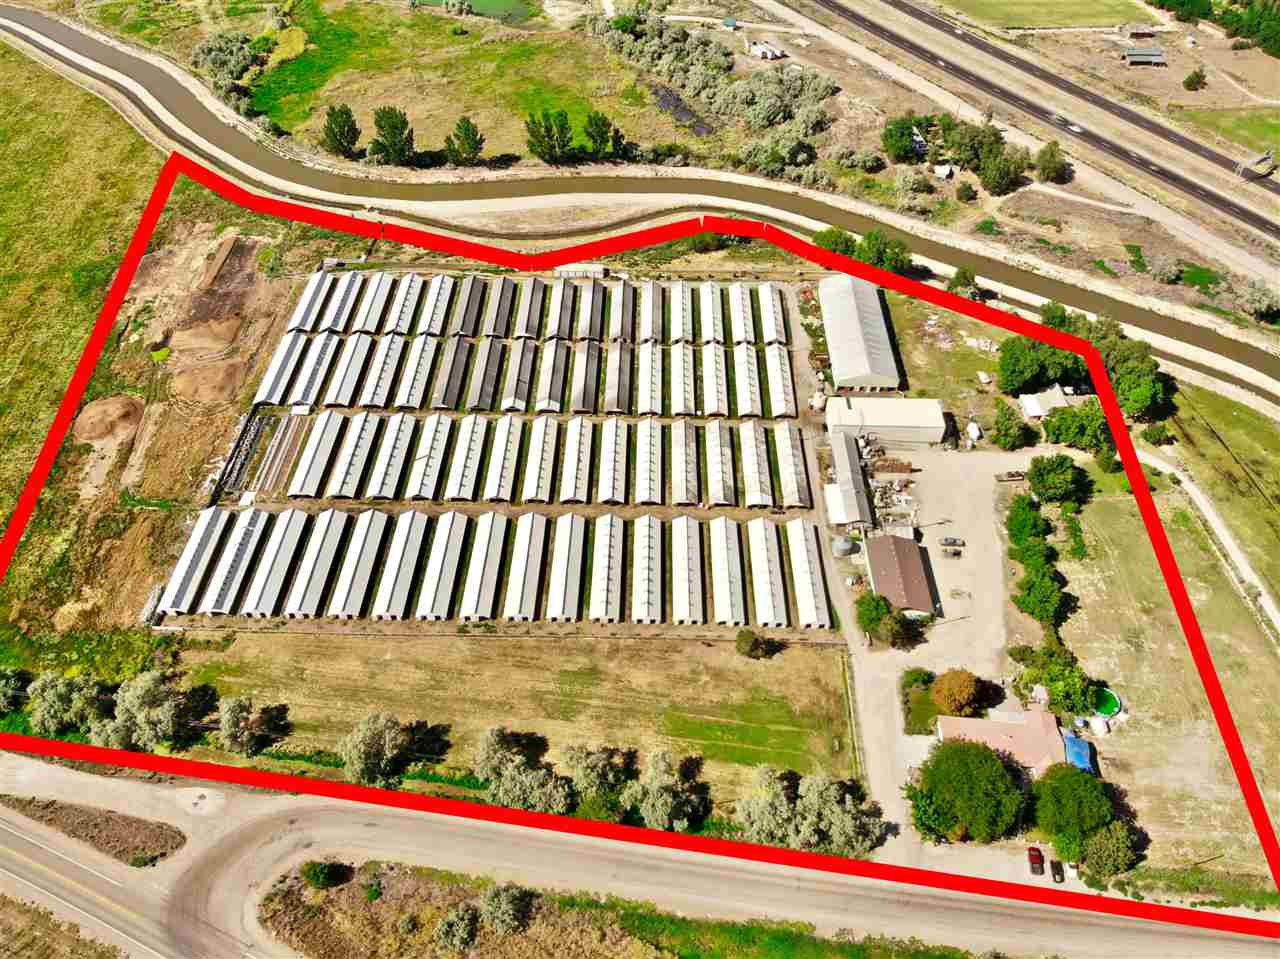 Fantastic opportunity for easy I-84 freeway access as well as Hwy 20-26 access. Located in the City Impact area with possible Commercial or Light Industrial rezone. Approx 91.18+/- acres in this immediate area available to create larger or even possibly smaller parcels for your needs. Currently zoned Ag w/ (62) 110' x 20' Sheds and 1 home (sold as-is). City sewer and water in the immediate area. Call for details.